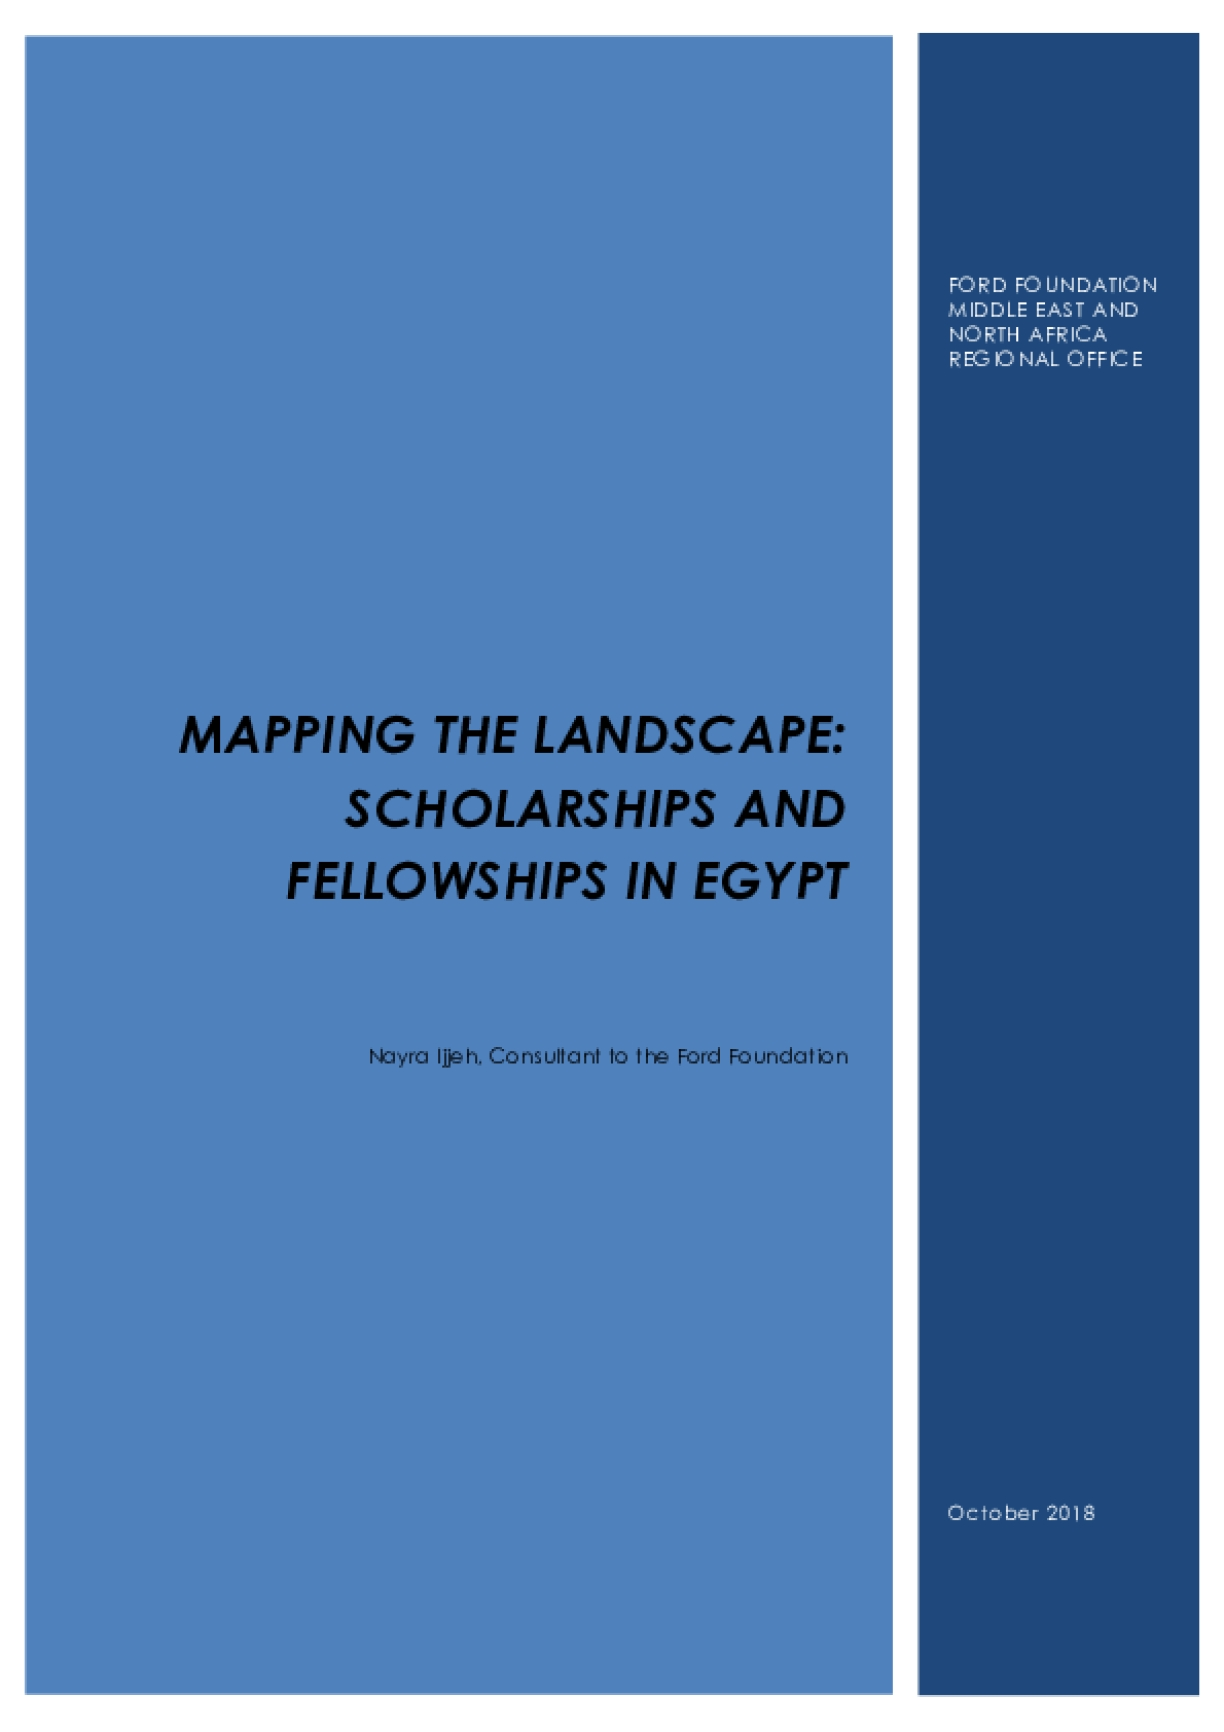 Mapping the Landscape of Scholarships and Fellowships in Egypt